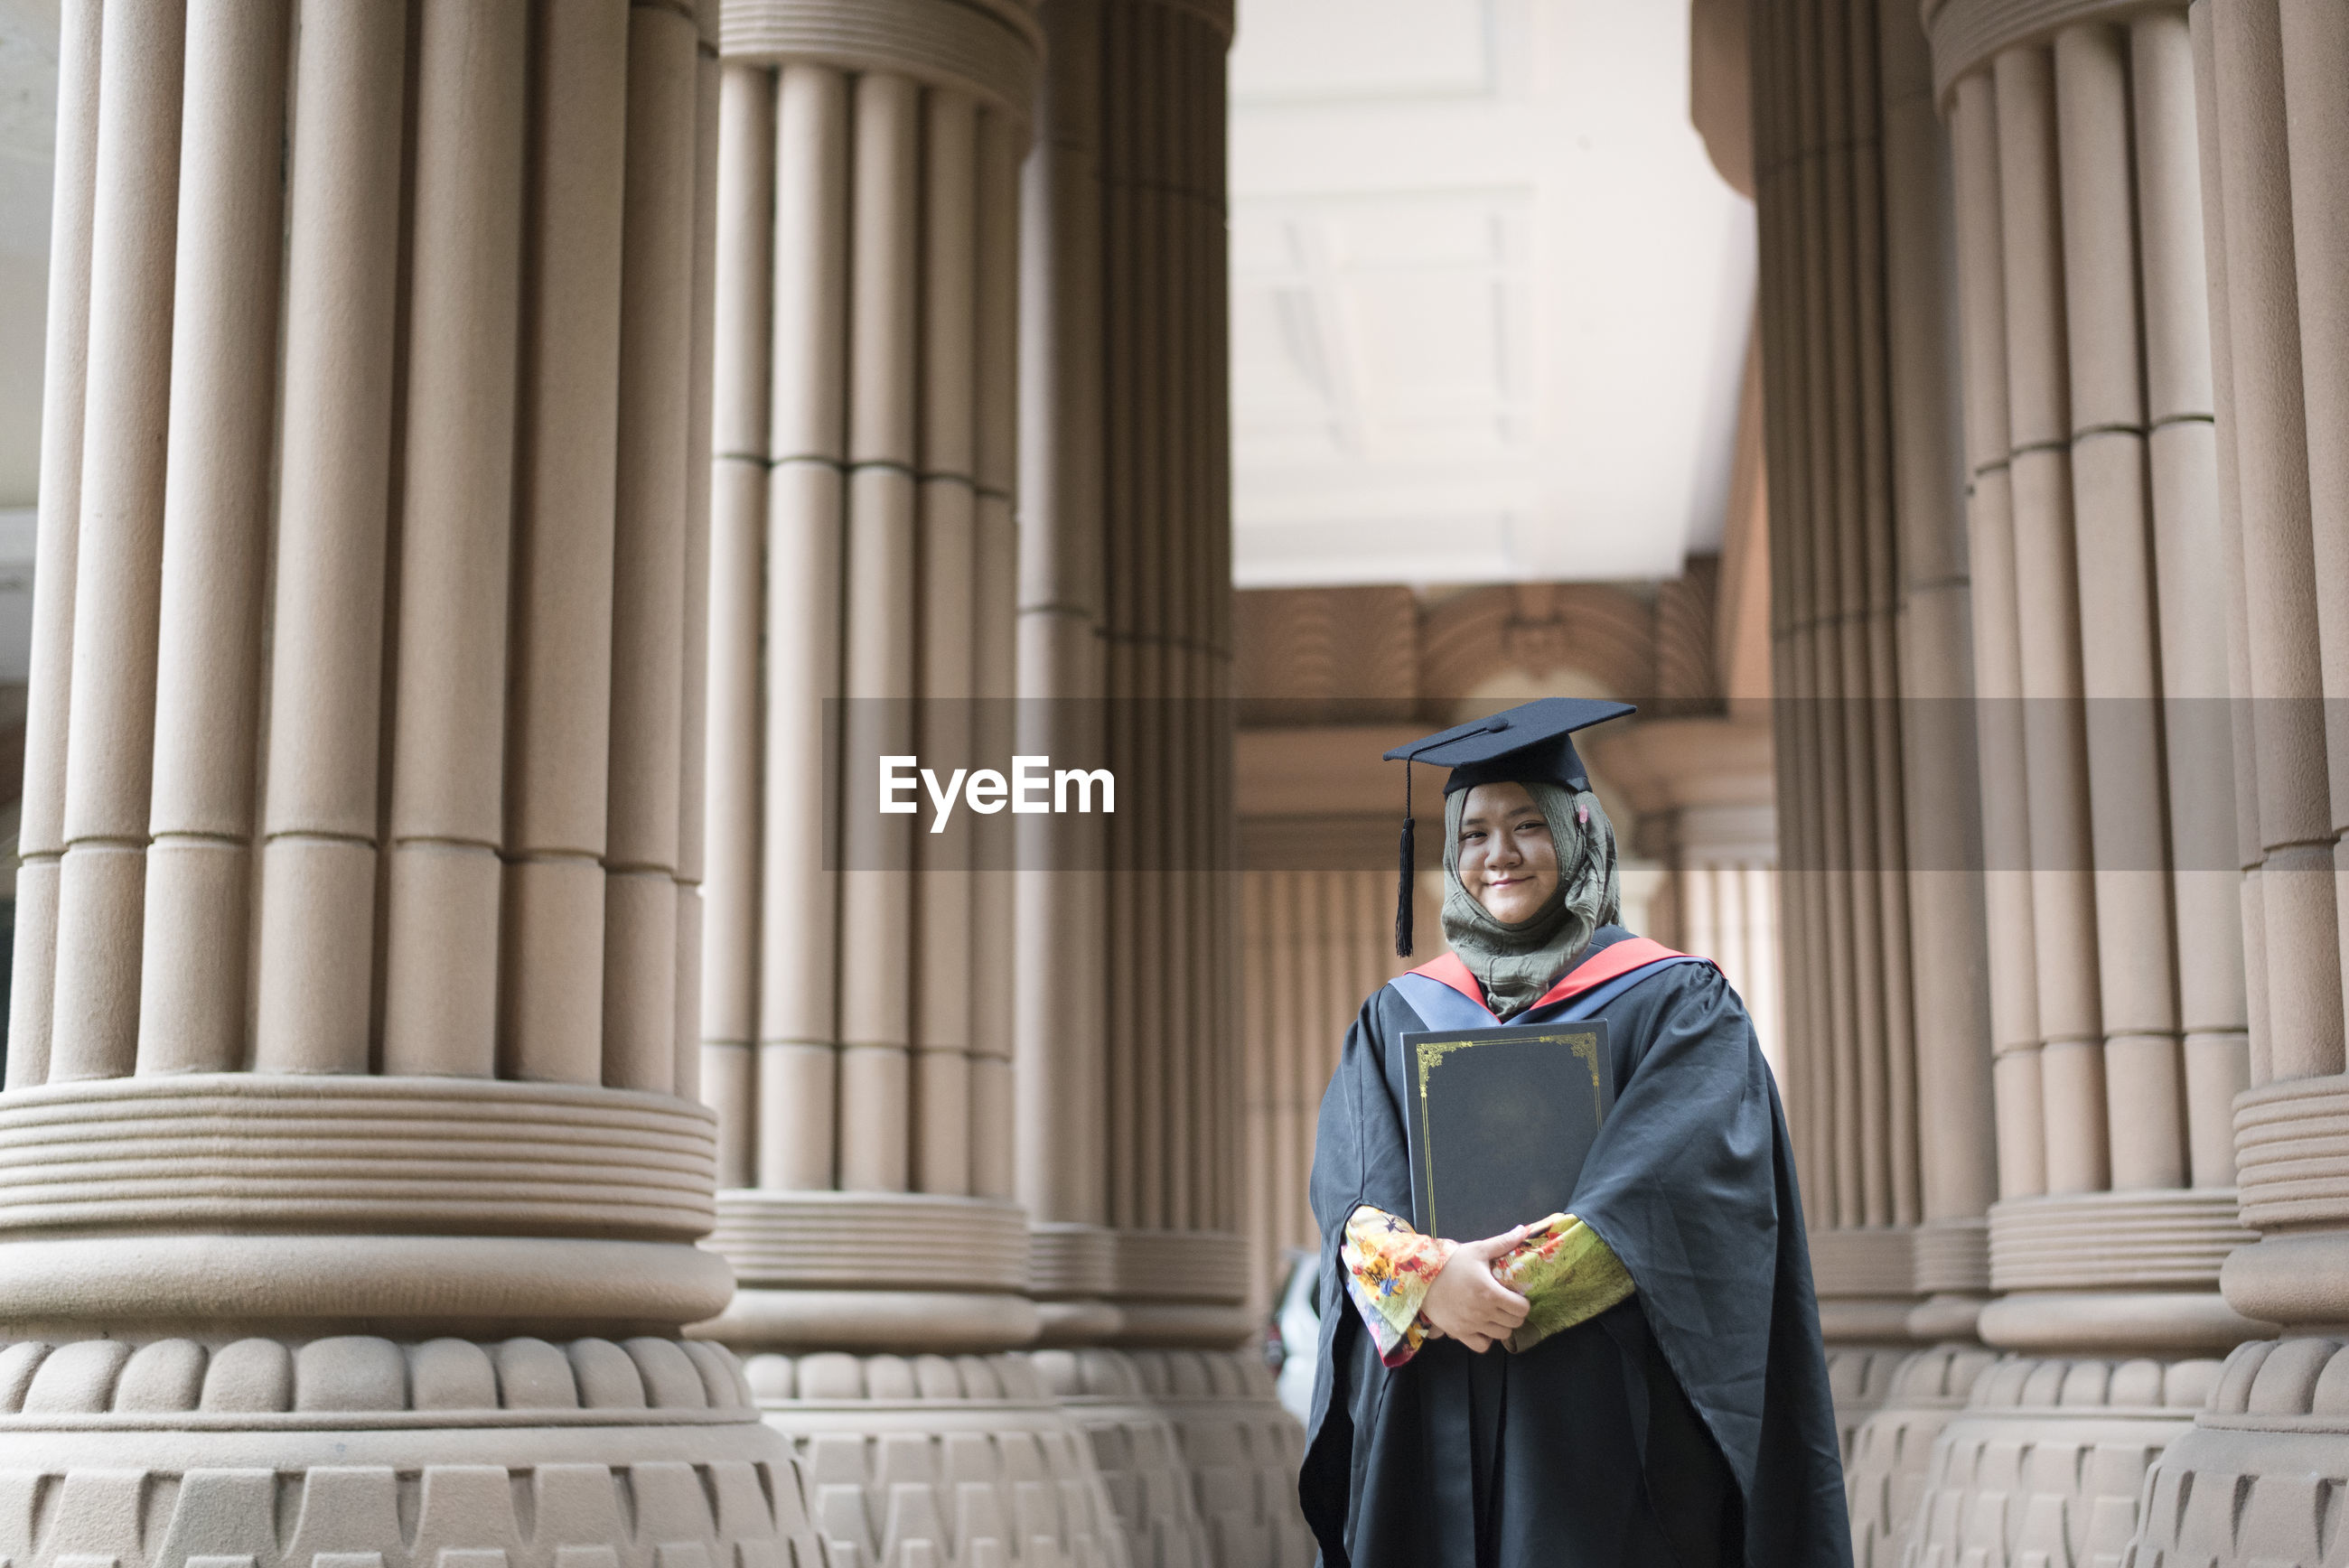 Portrait of smiling young woman wearing graduation gown at university